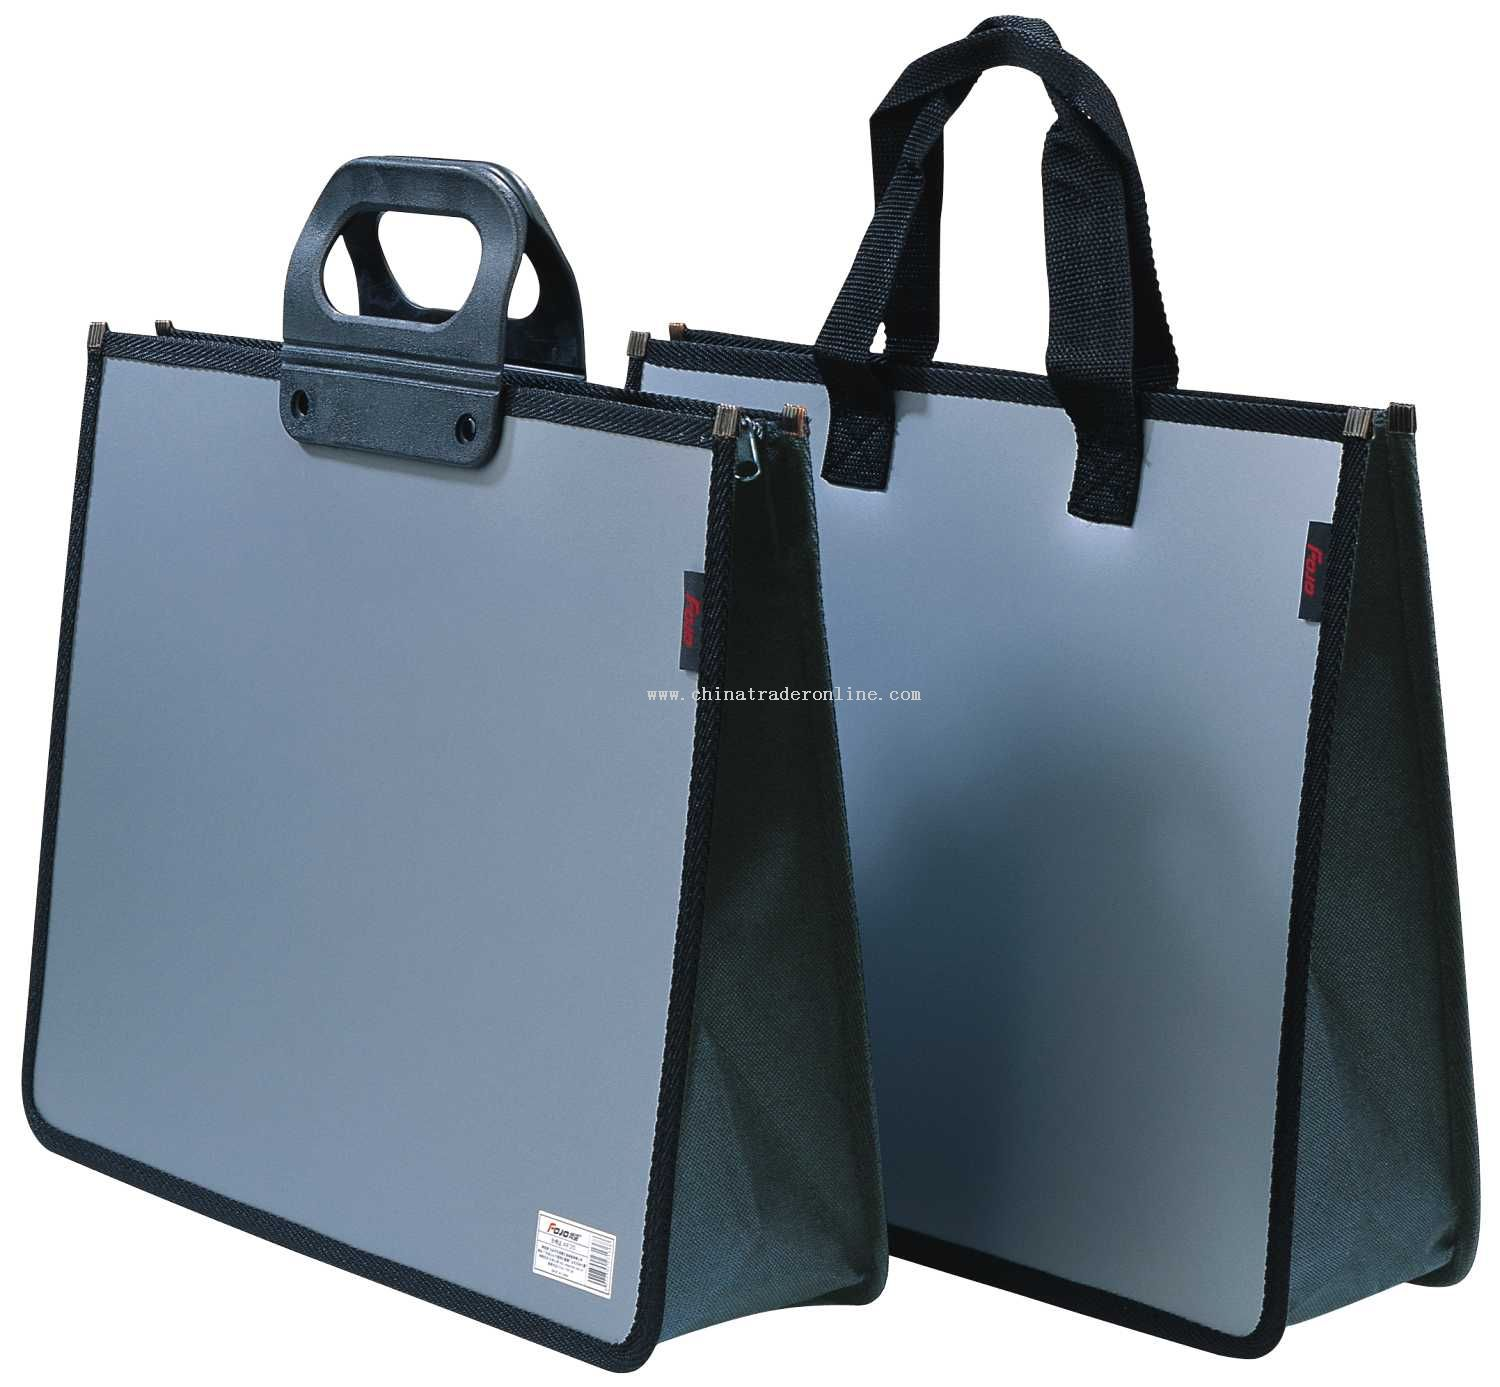 Portable business bag